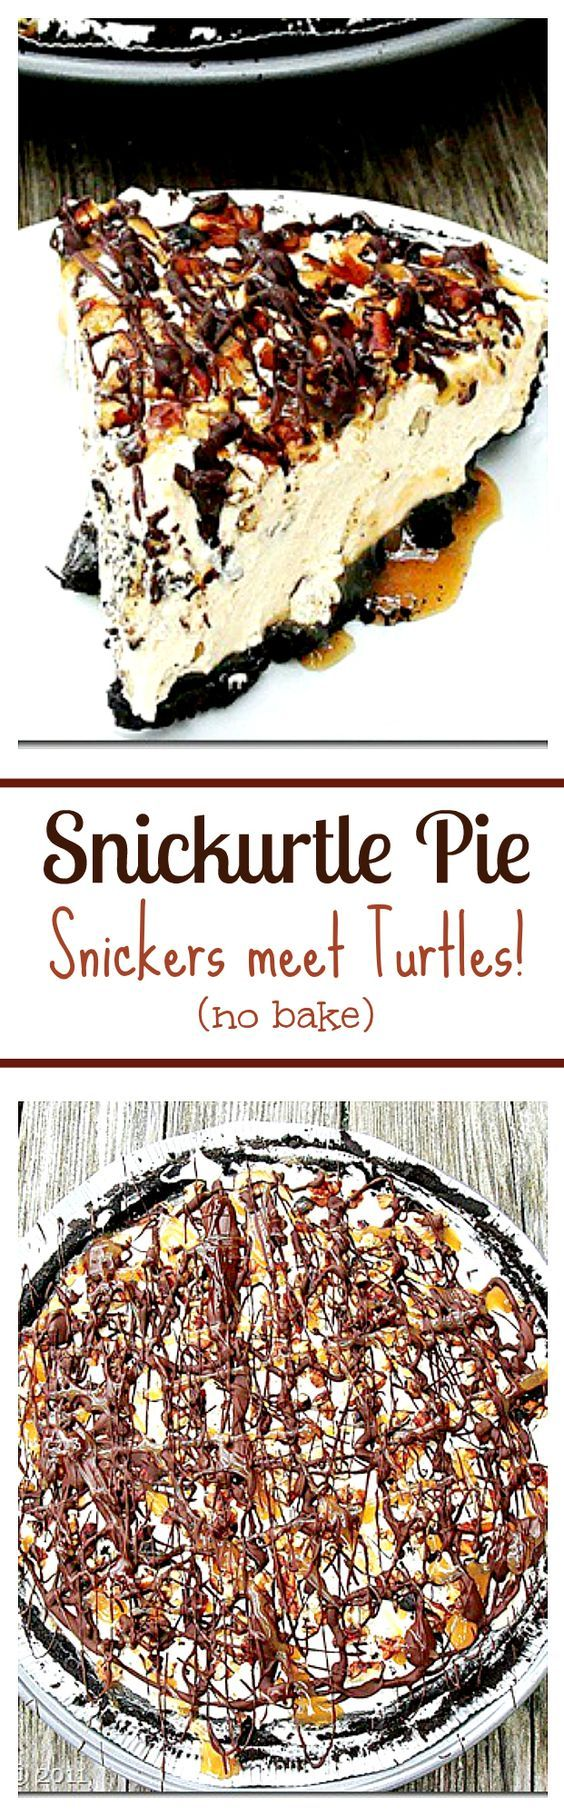 Snickurtle Pie - The marriage of two immensely yummy chocolate treats in one pie crust: Snickurtle Pie: Snickers meet Turtles.